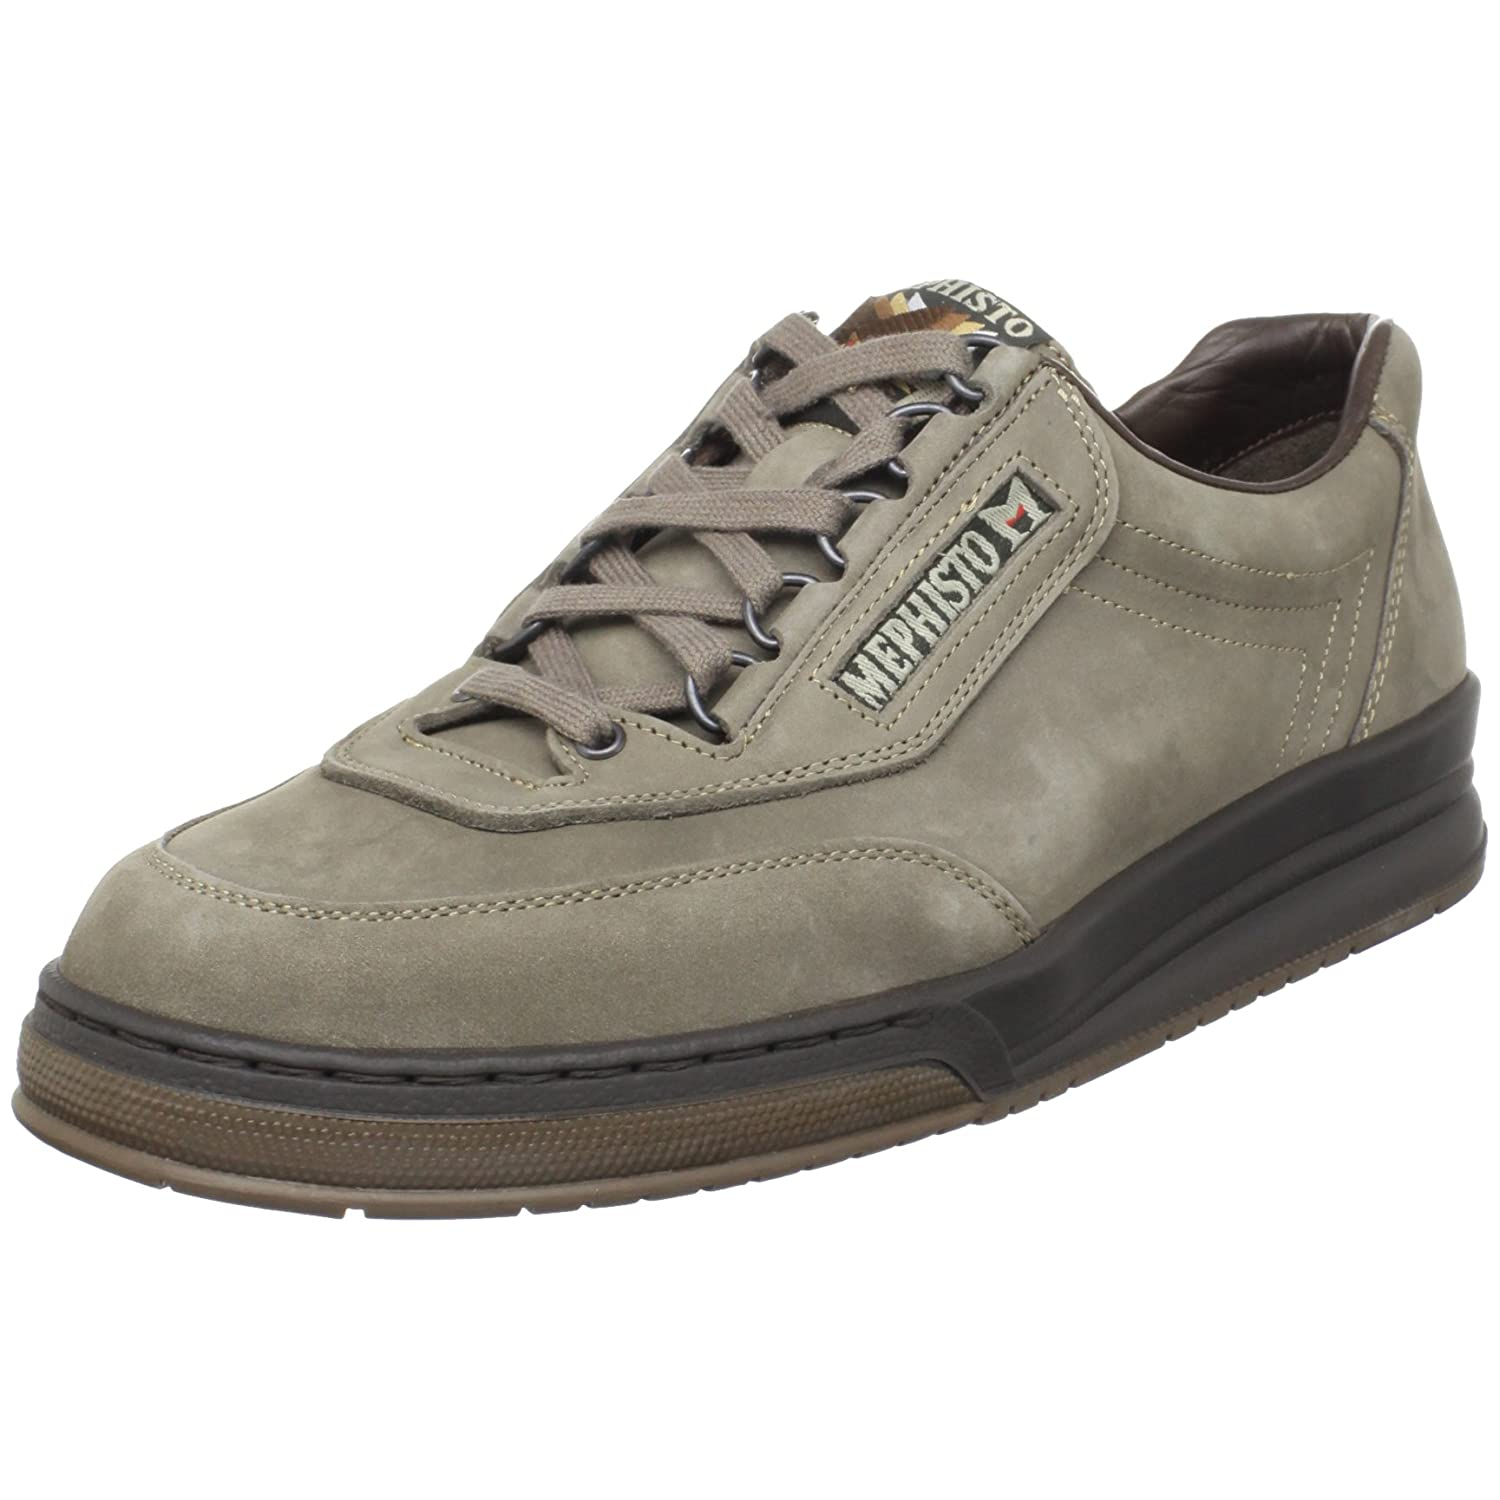 Mephisto Men's Match Walking Shoe B0007TP79S 13 D(M) US|Birch Nubuck